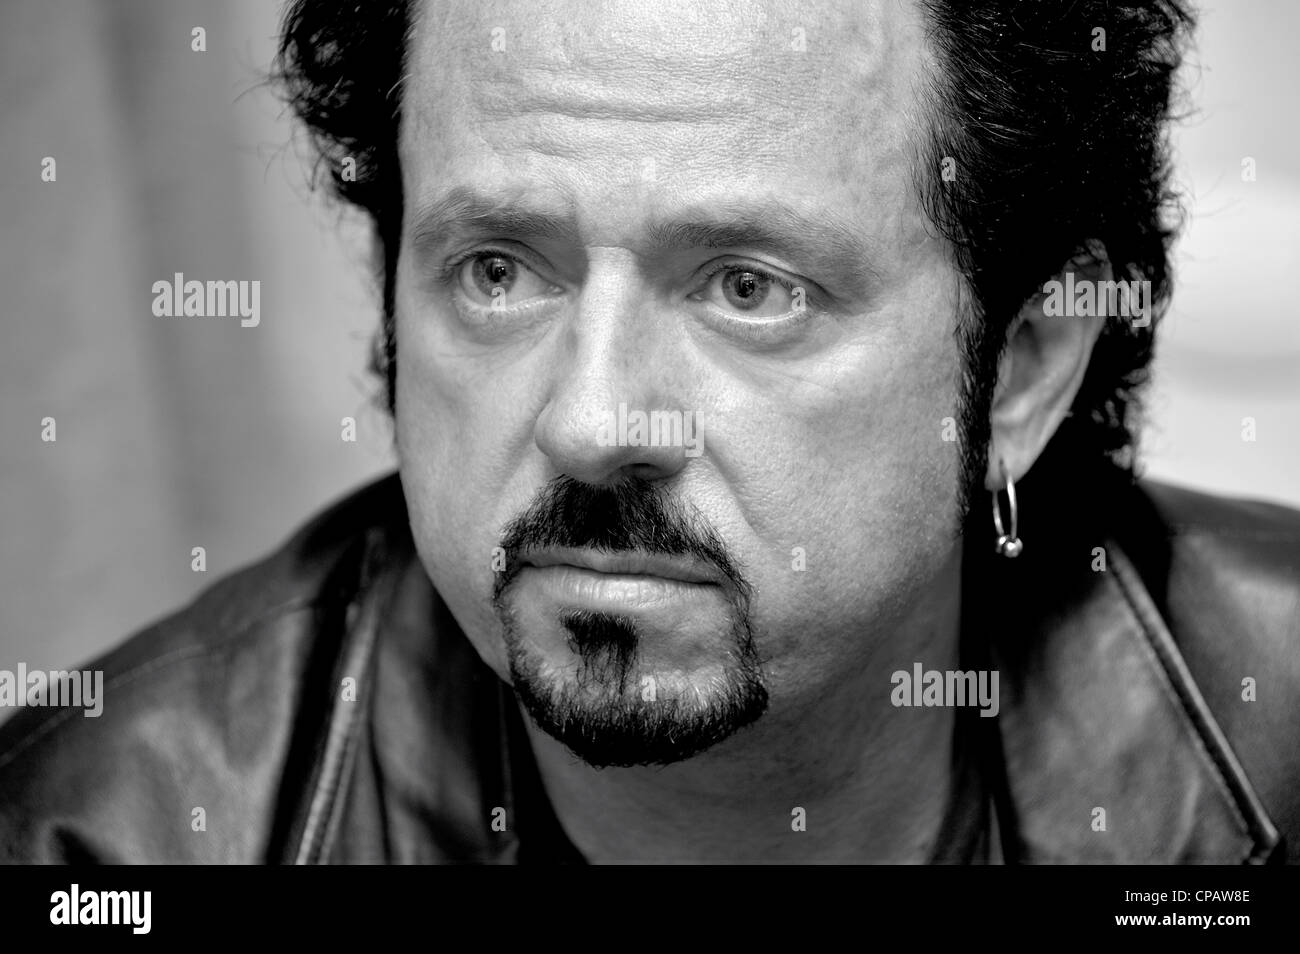 Steve Lukather, guitarist, vocalist, composer, producer, arranger, toto, lukather, music, - Stock Image